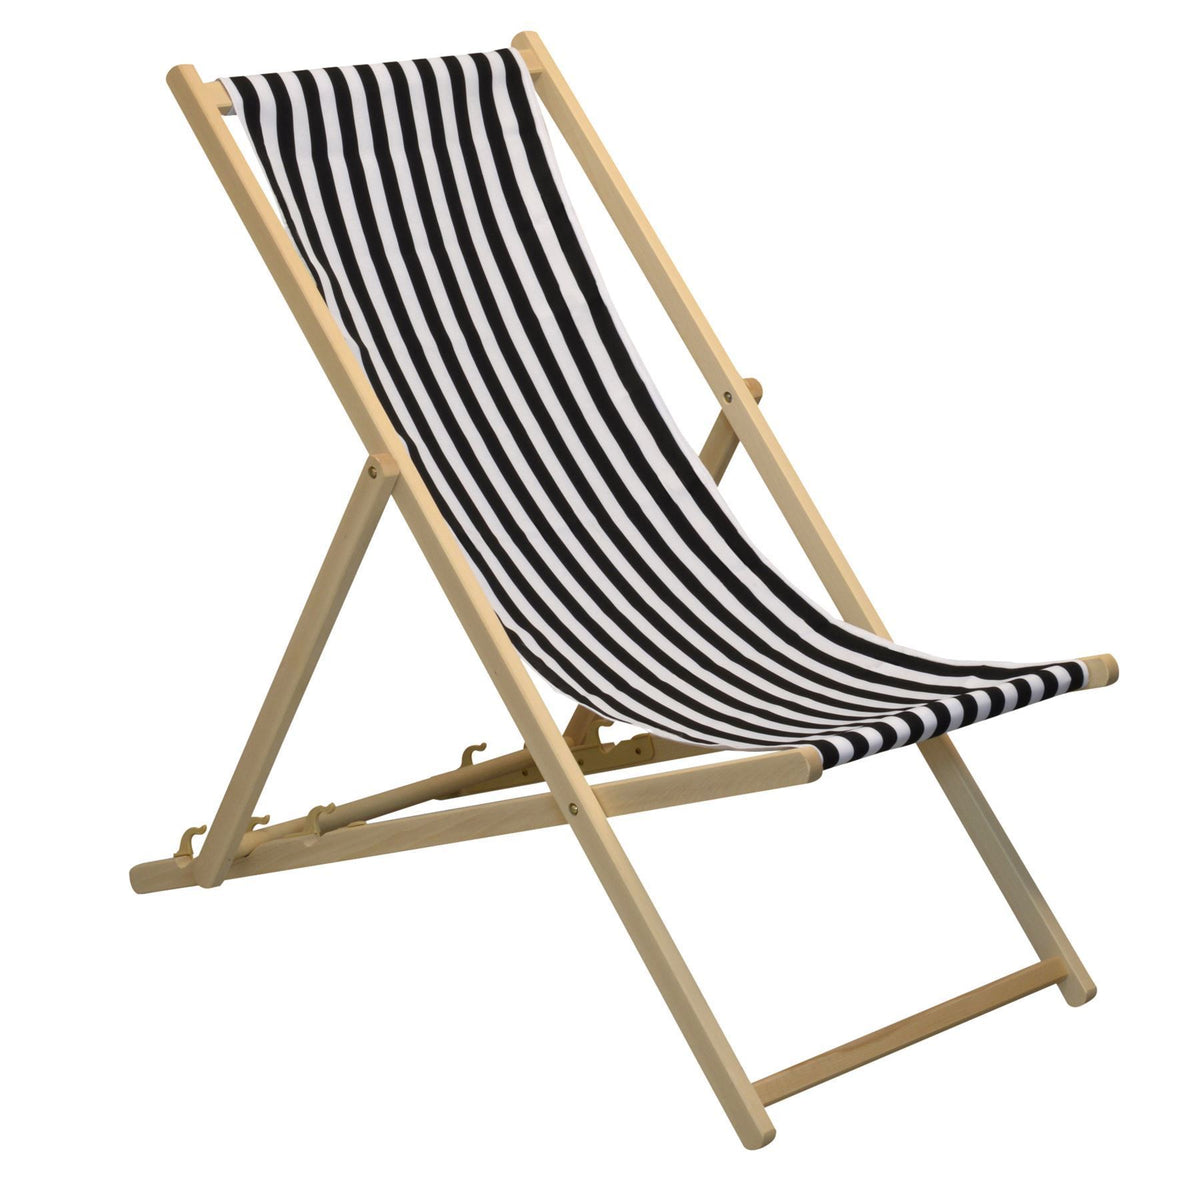 Harbour Housewares Beach Deck Chair - Black/White Stripes in Garden